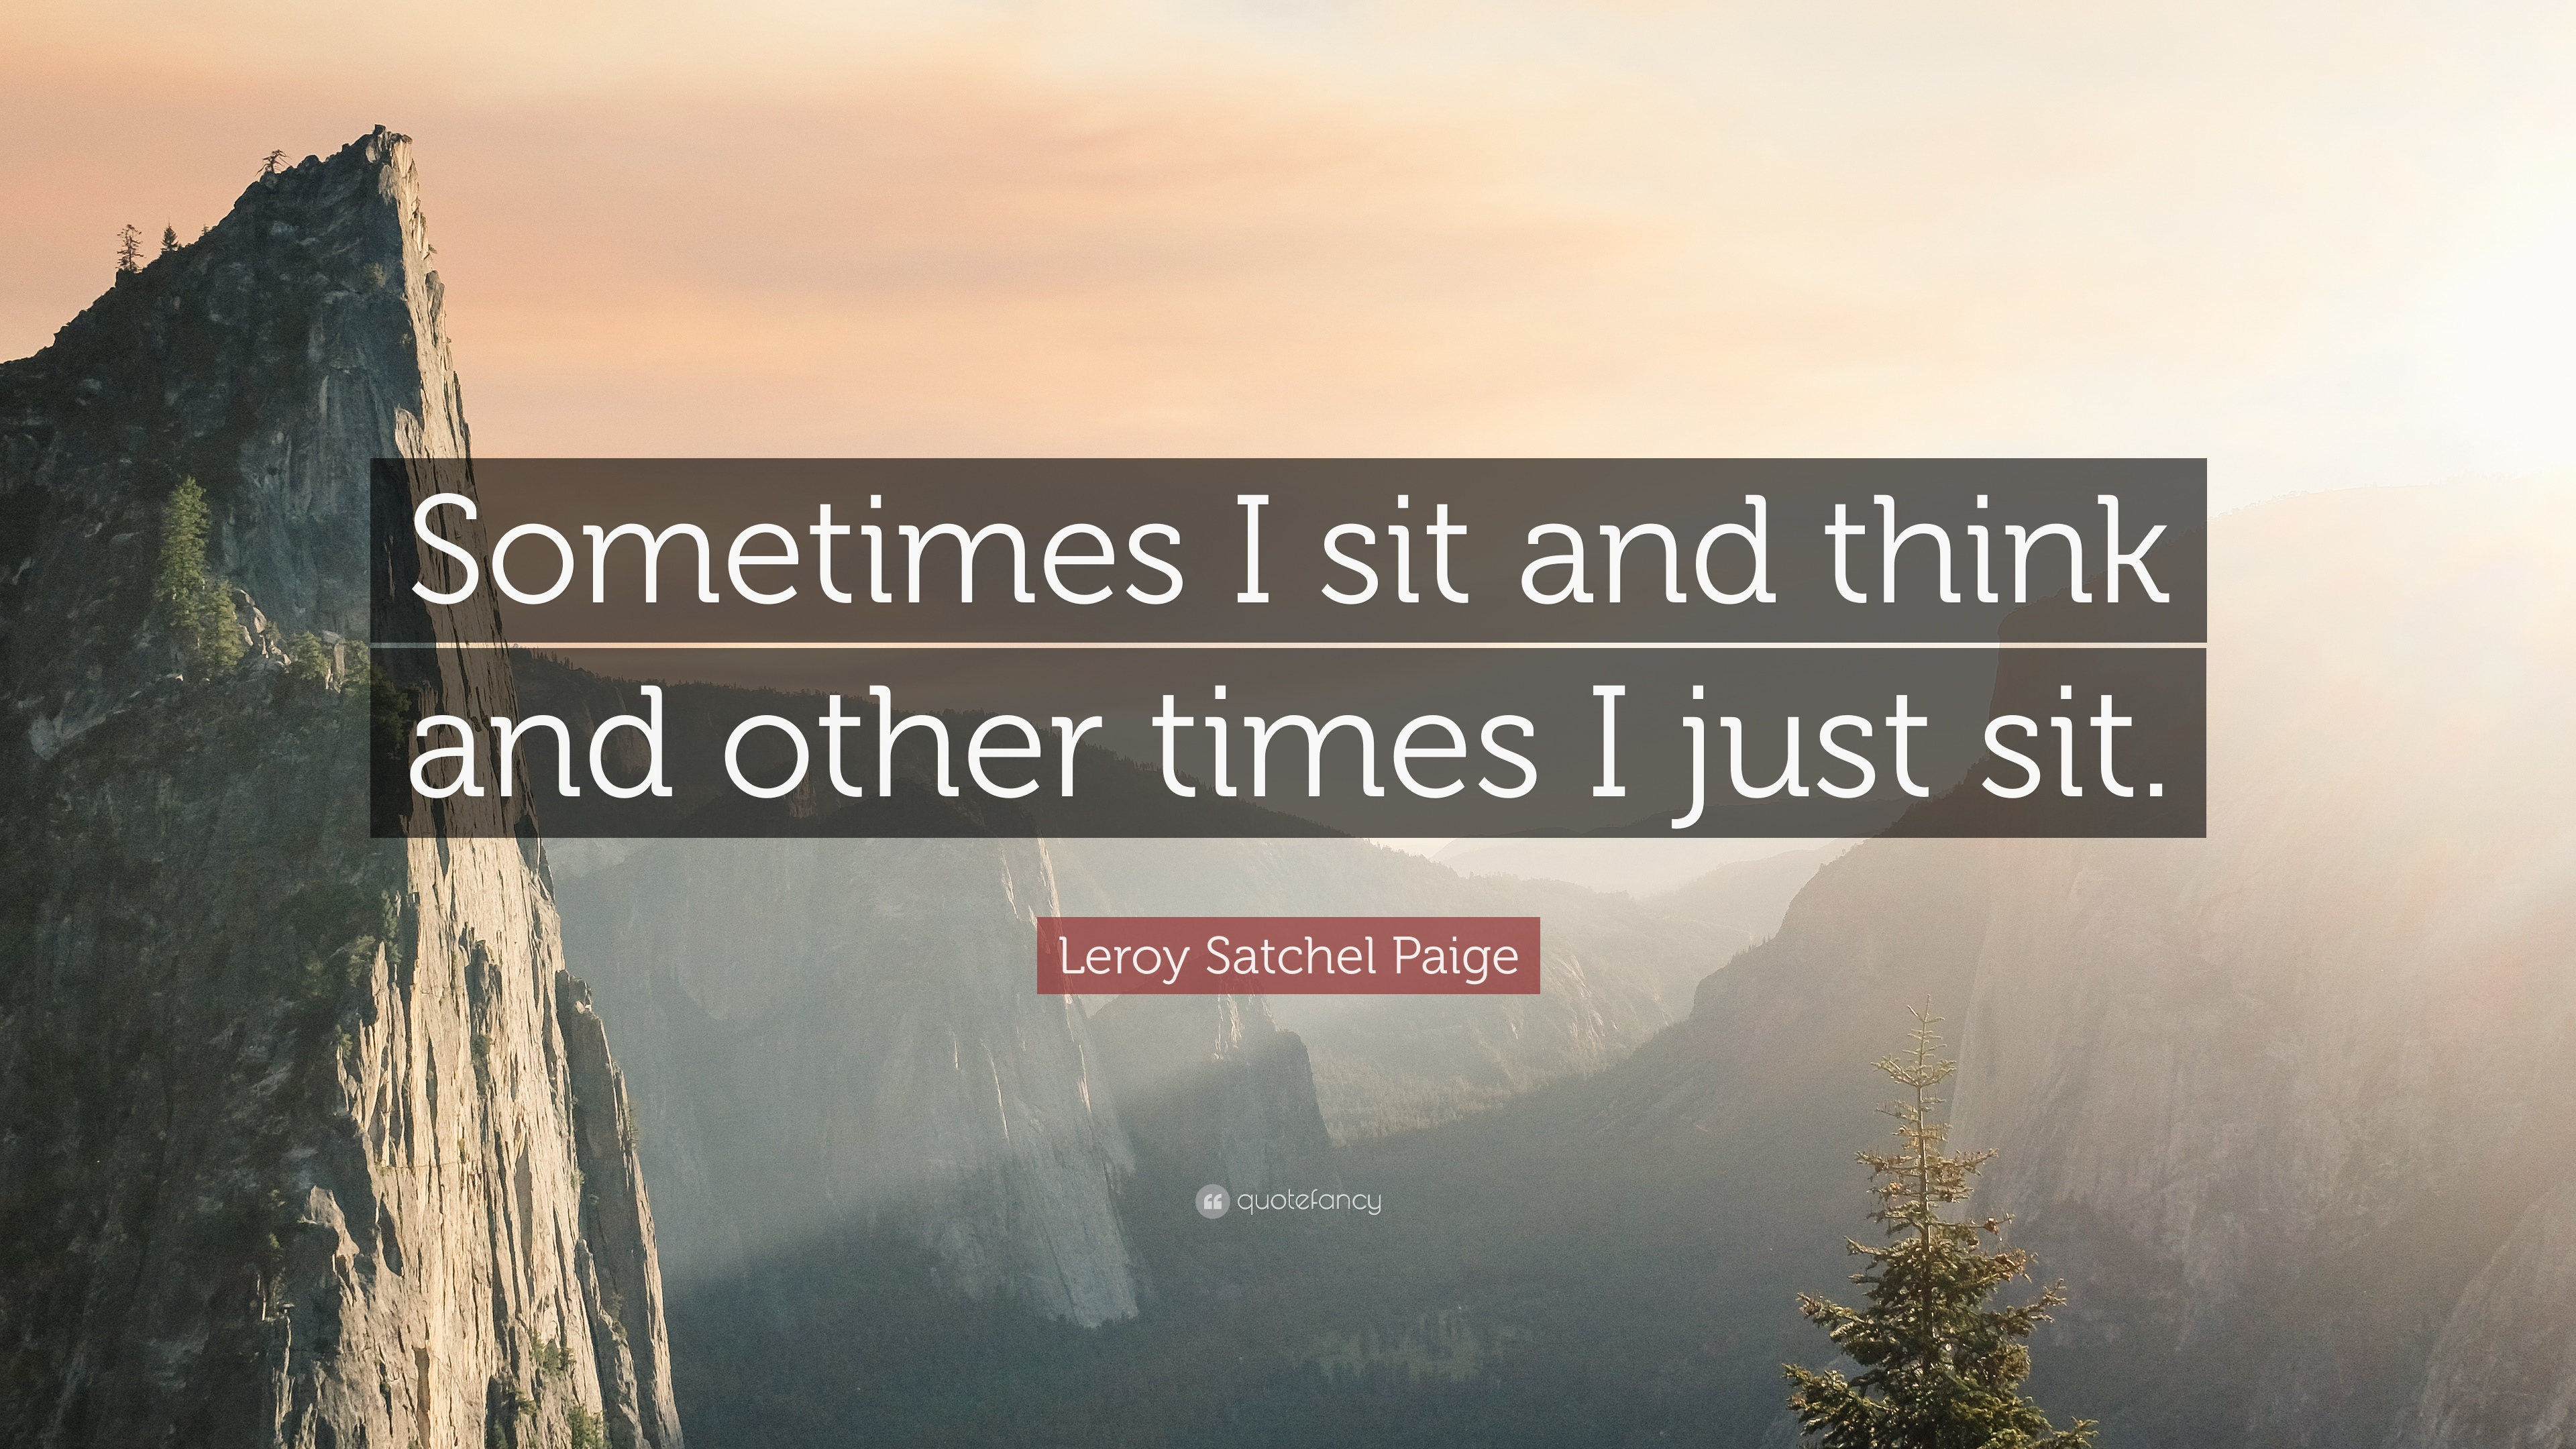 Leroy Satchel Paige Quotes (46 Wallpapers)